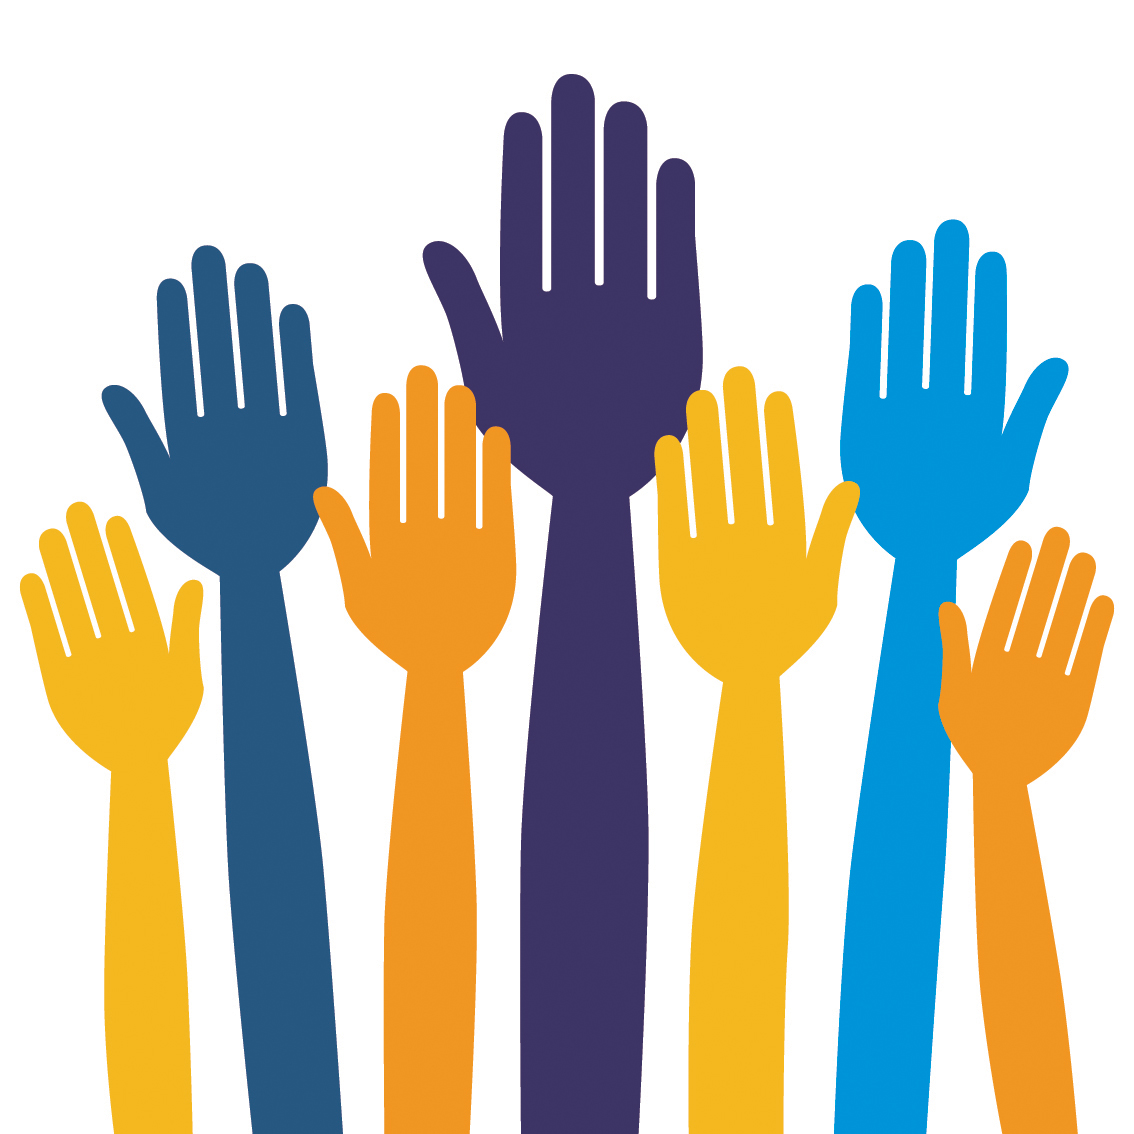 Volunteering clipart public meeting. Free hands graphic download